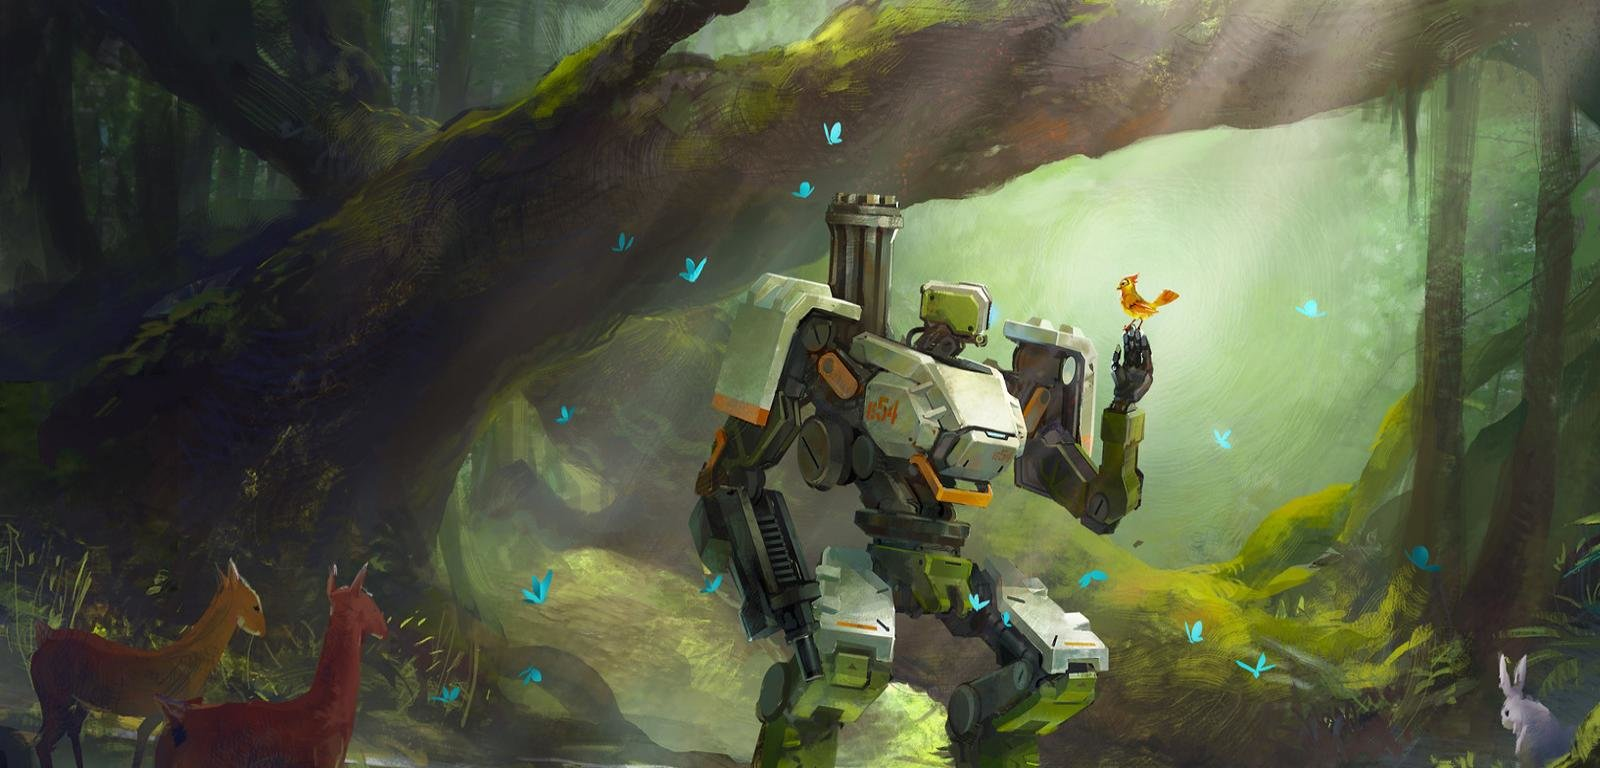 Bastion overwatch wallpapers hd for desktop backgrounds - Bastion wallpaper ...